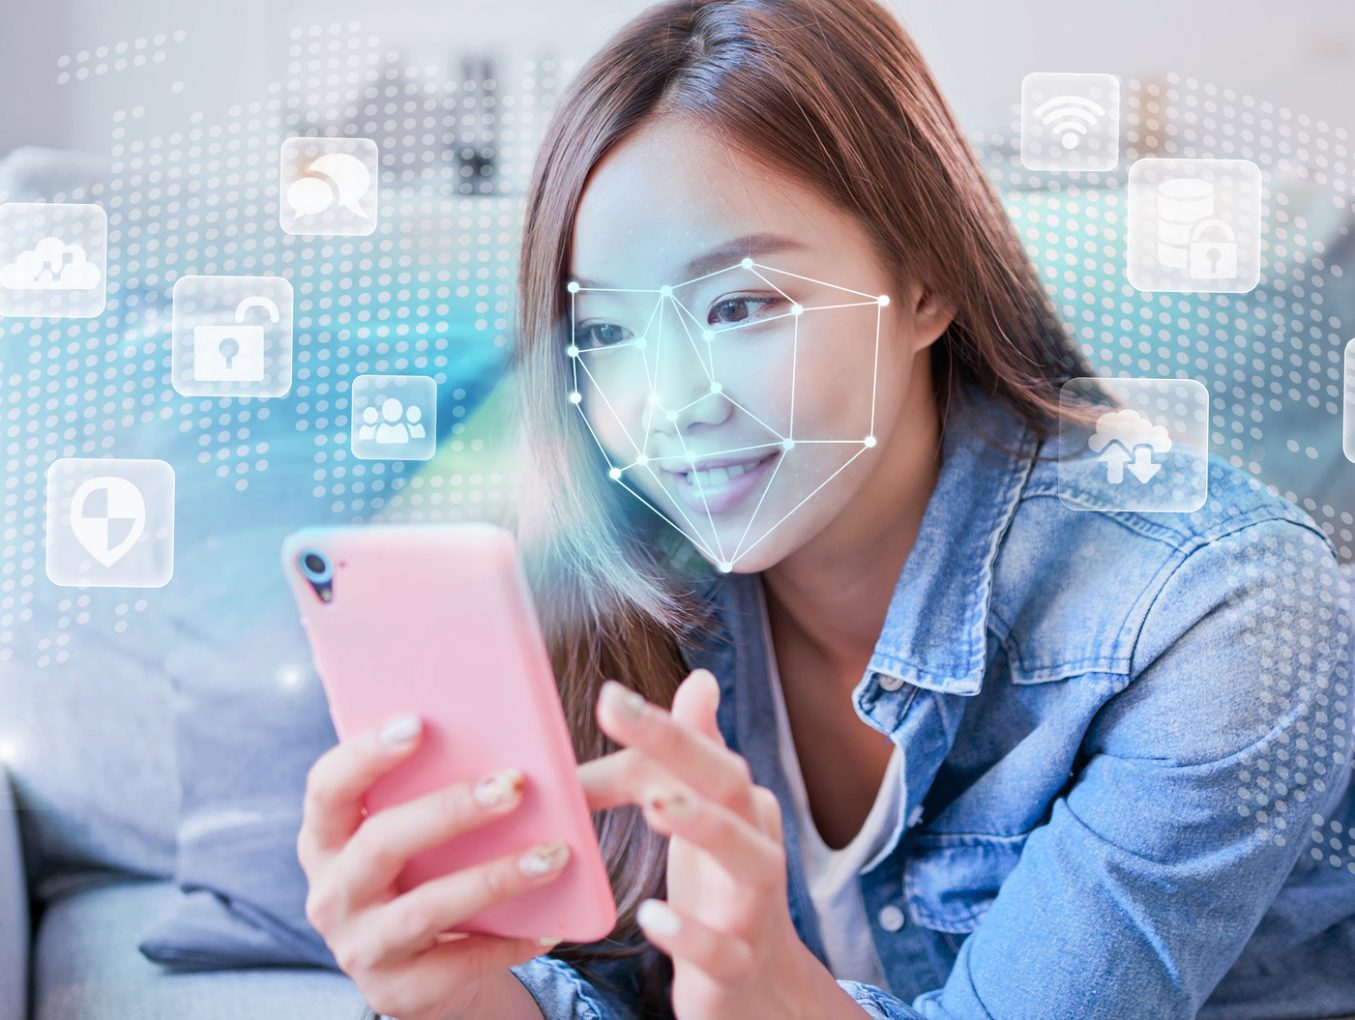 The Various Uses of Face Recognition Technology